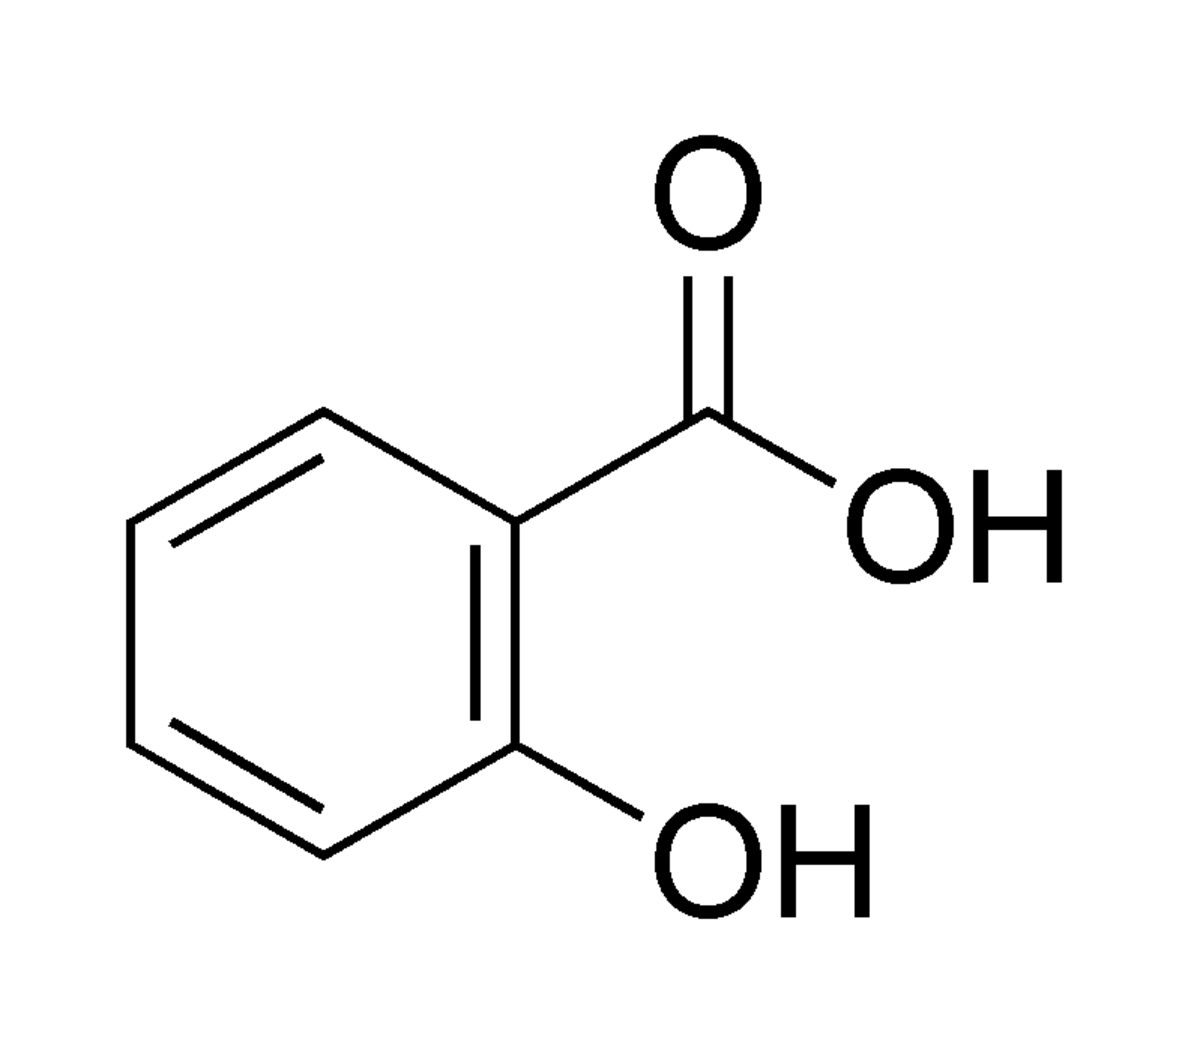 The chemical structure of Salicylic acid, Asprin's active ingredient.